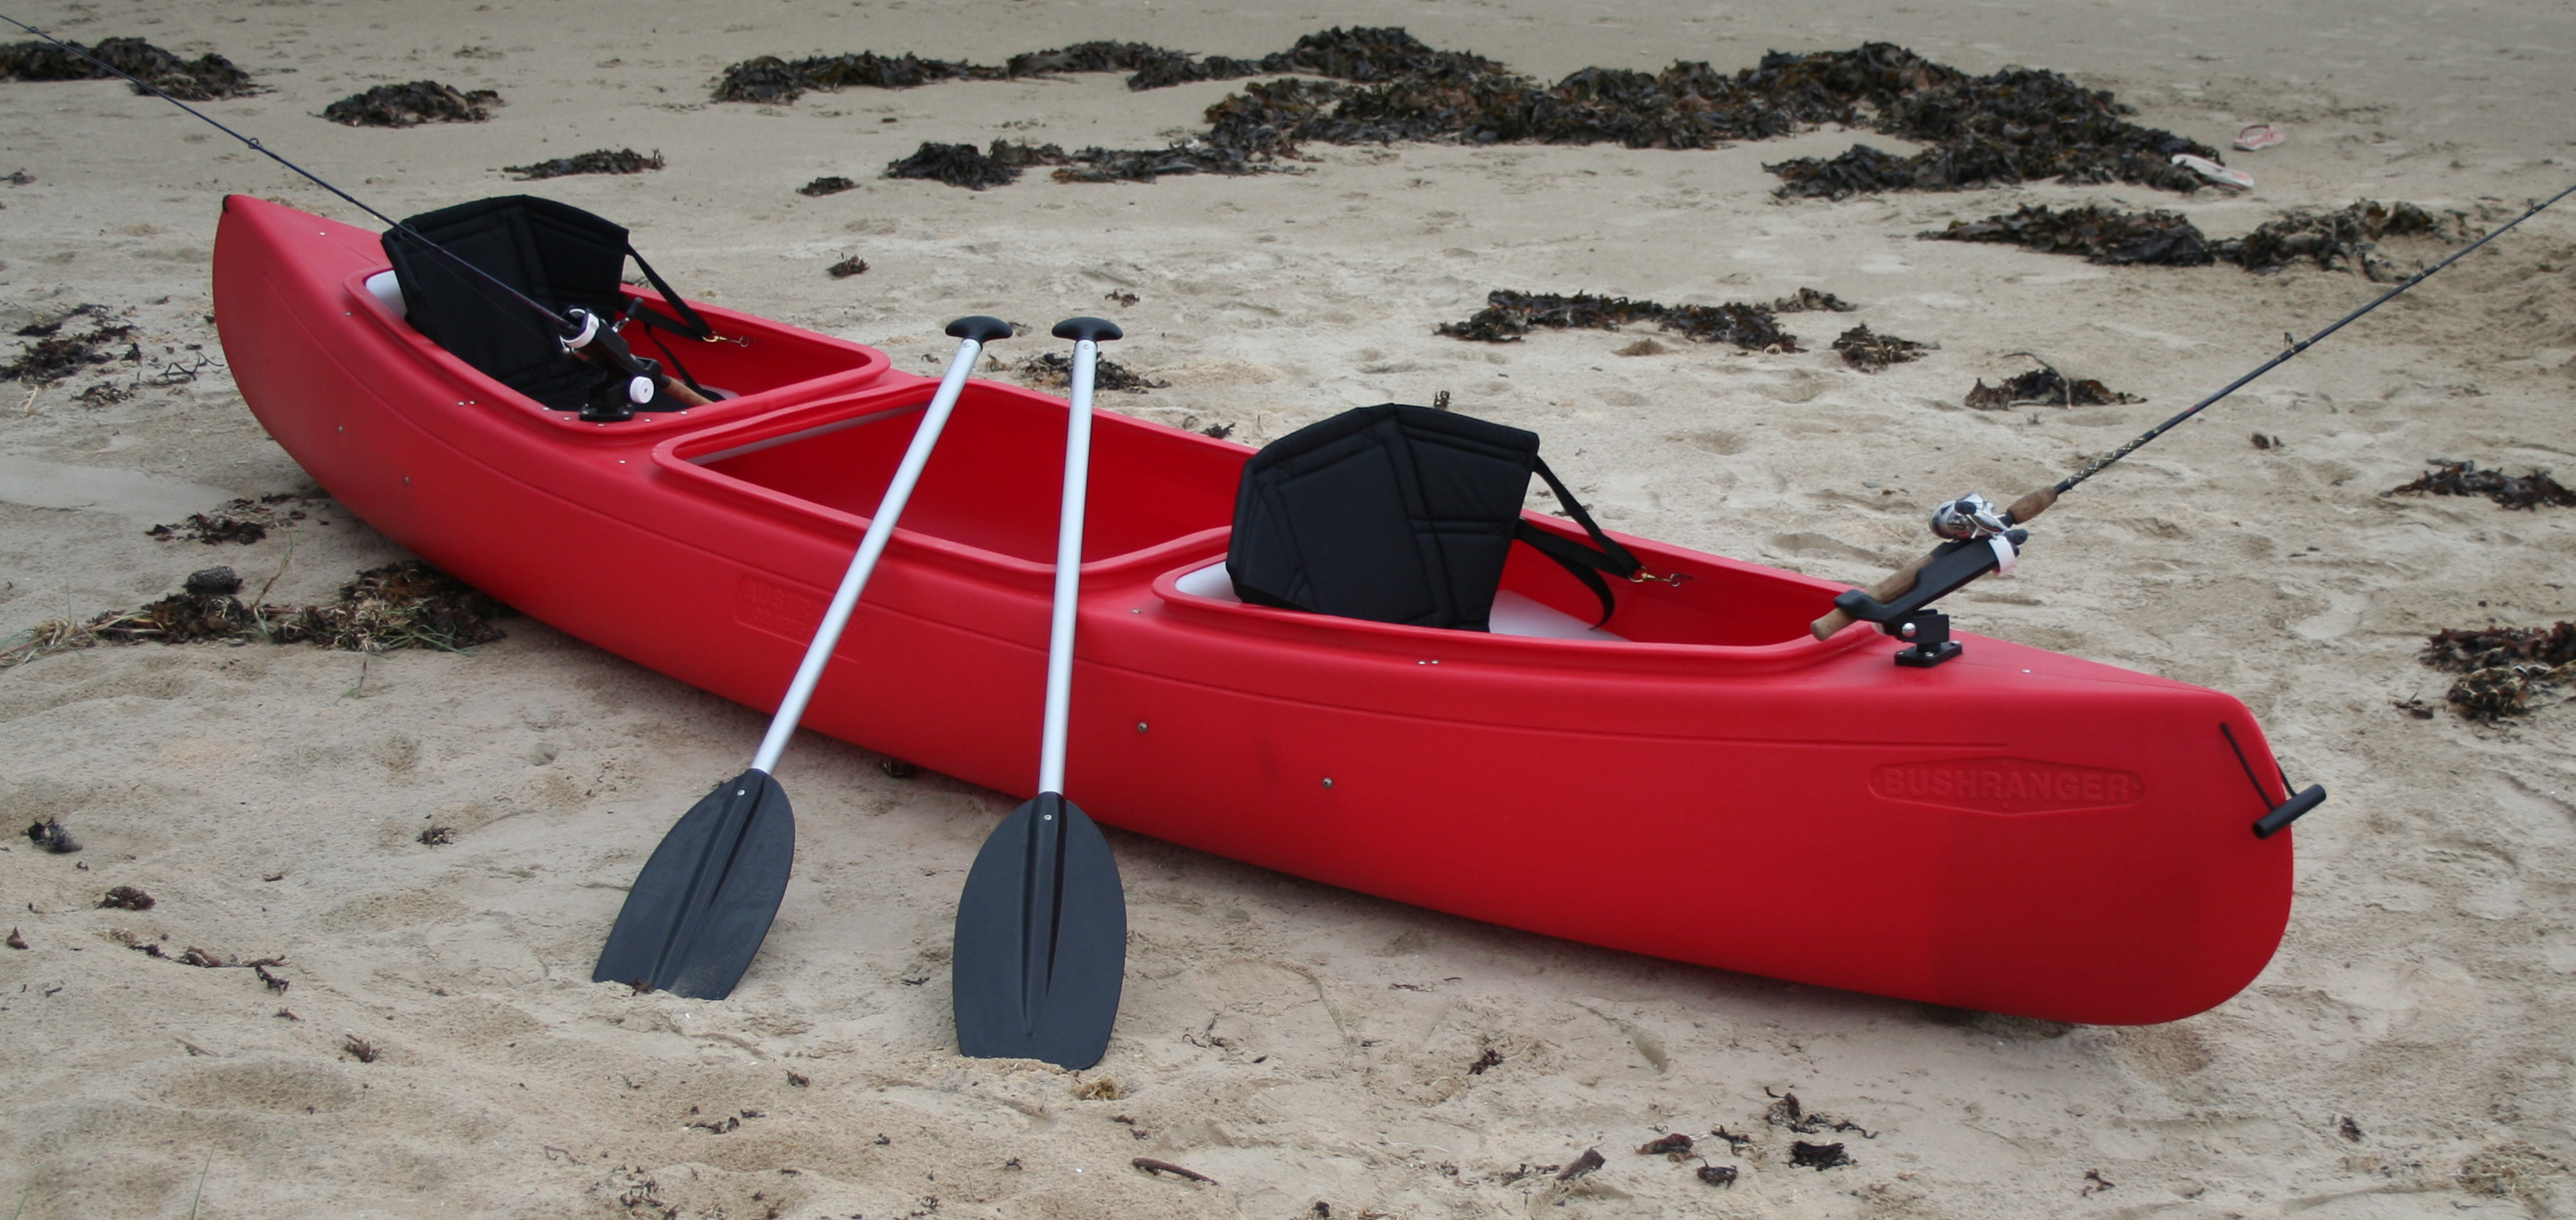 Bushranger semi open canoe made in australia by australis for Fishing from a canoe